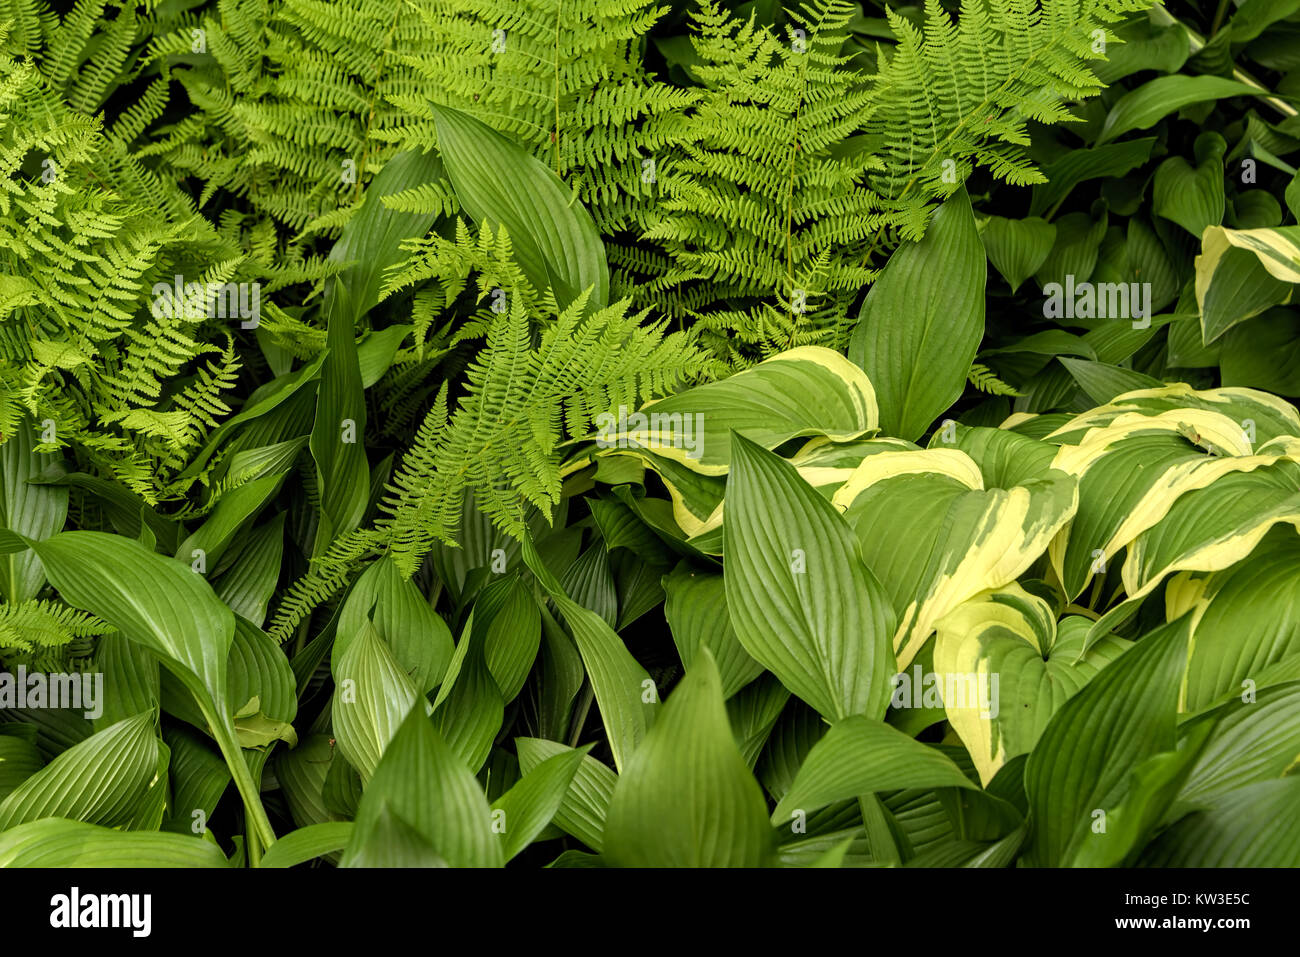 Closeup of large, small, wide and long green leaves - Stock Image